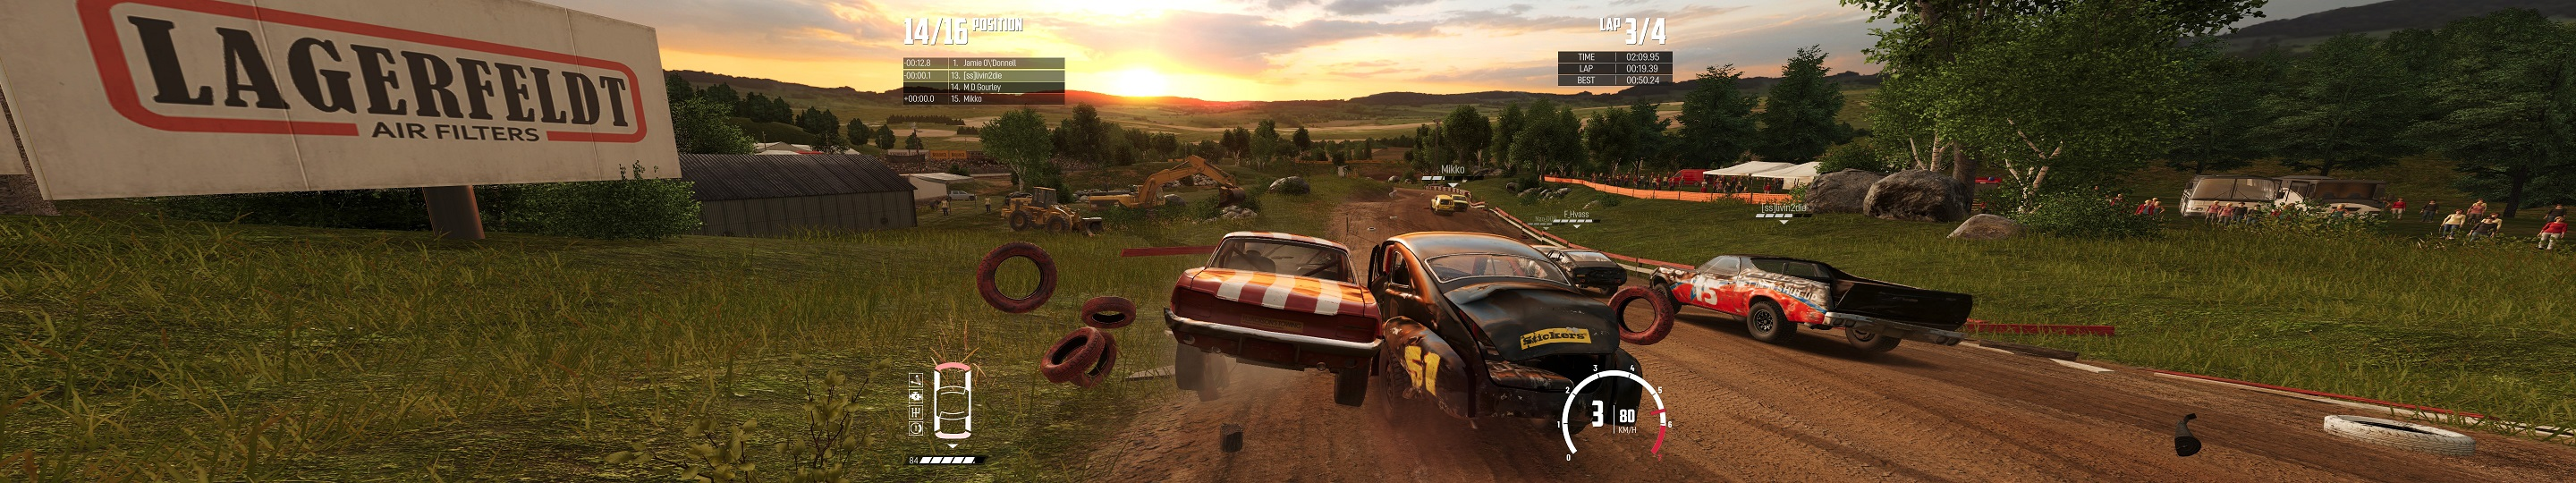 WRECKFEST with RTX2070 sign copy.jpg